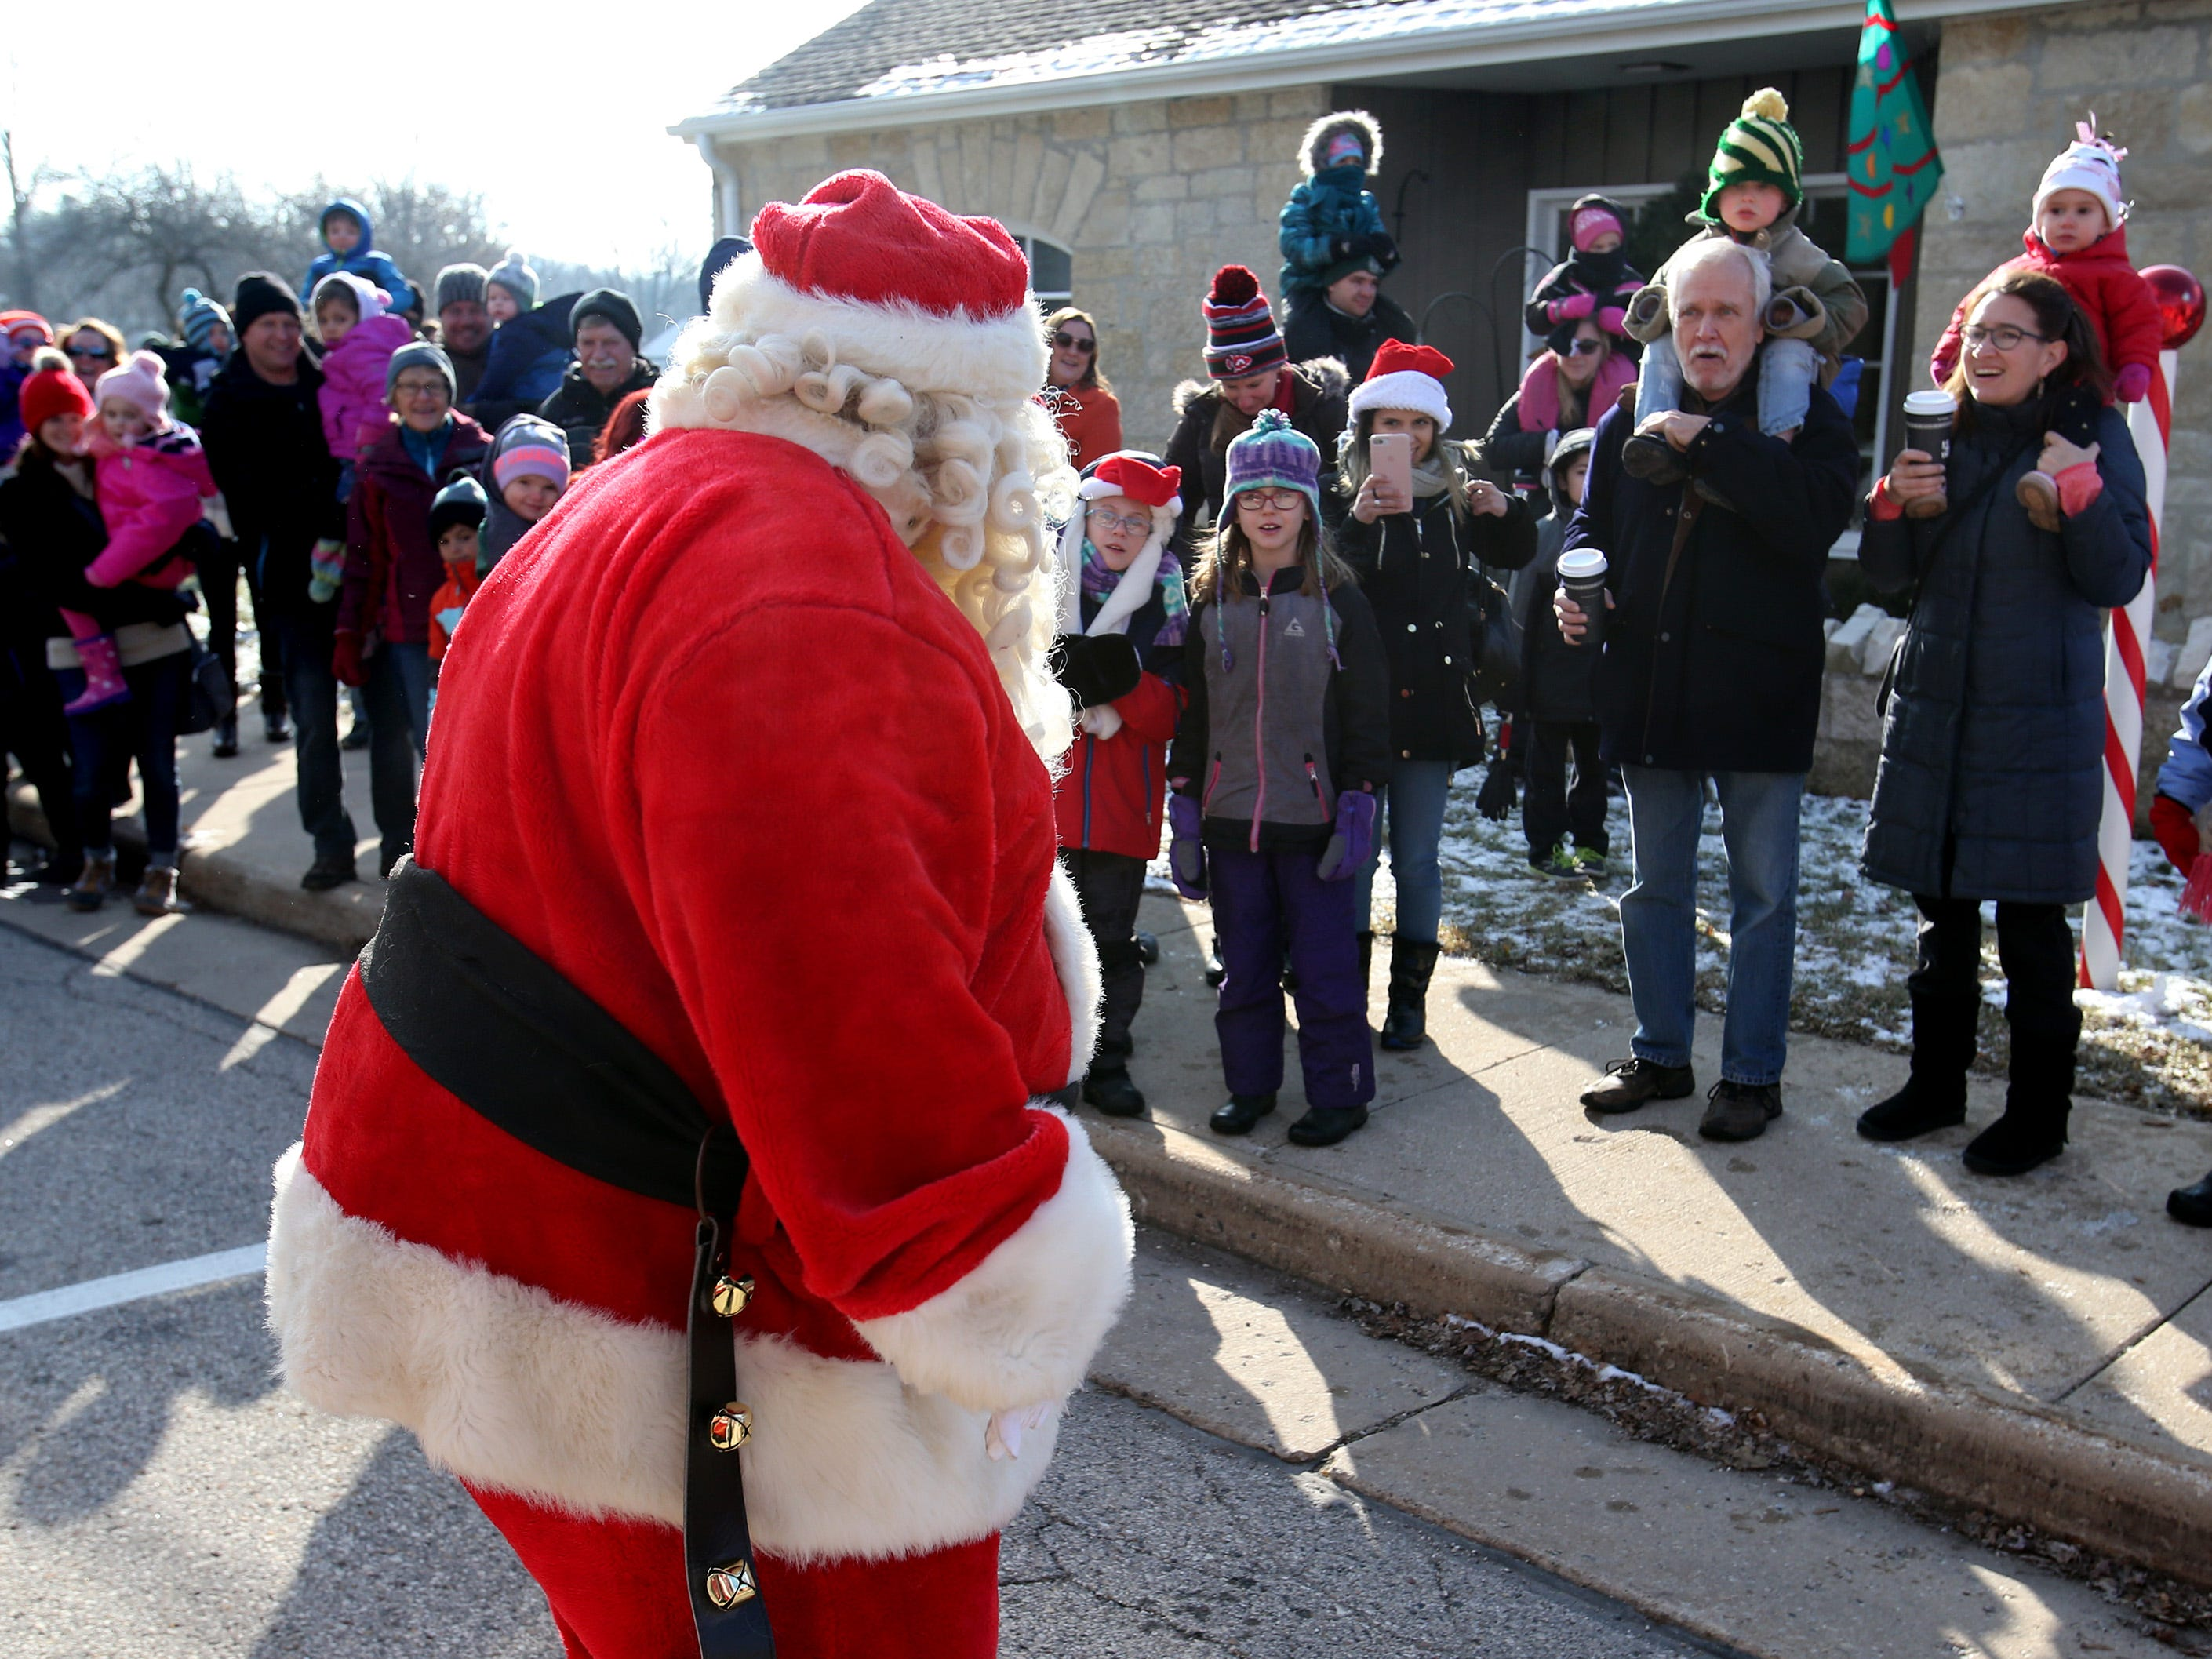 Santa arrives at the Village Hall after a ride aboard a Wales Fire Department engine for Christmas in Wales on Dec. 8.